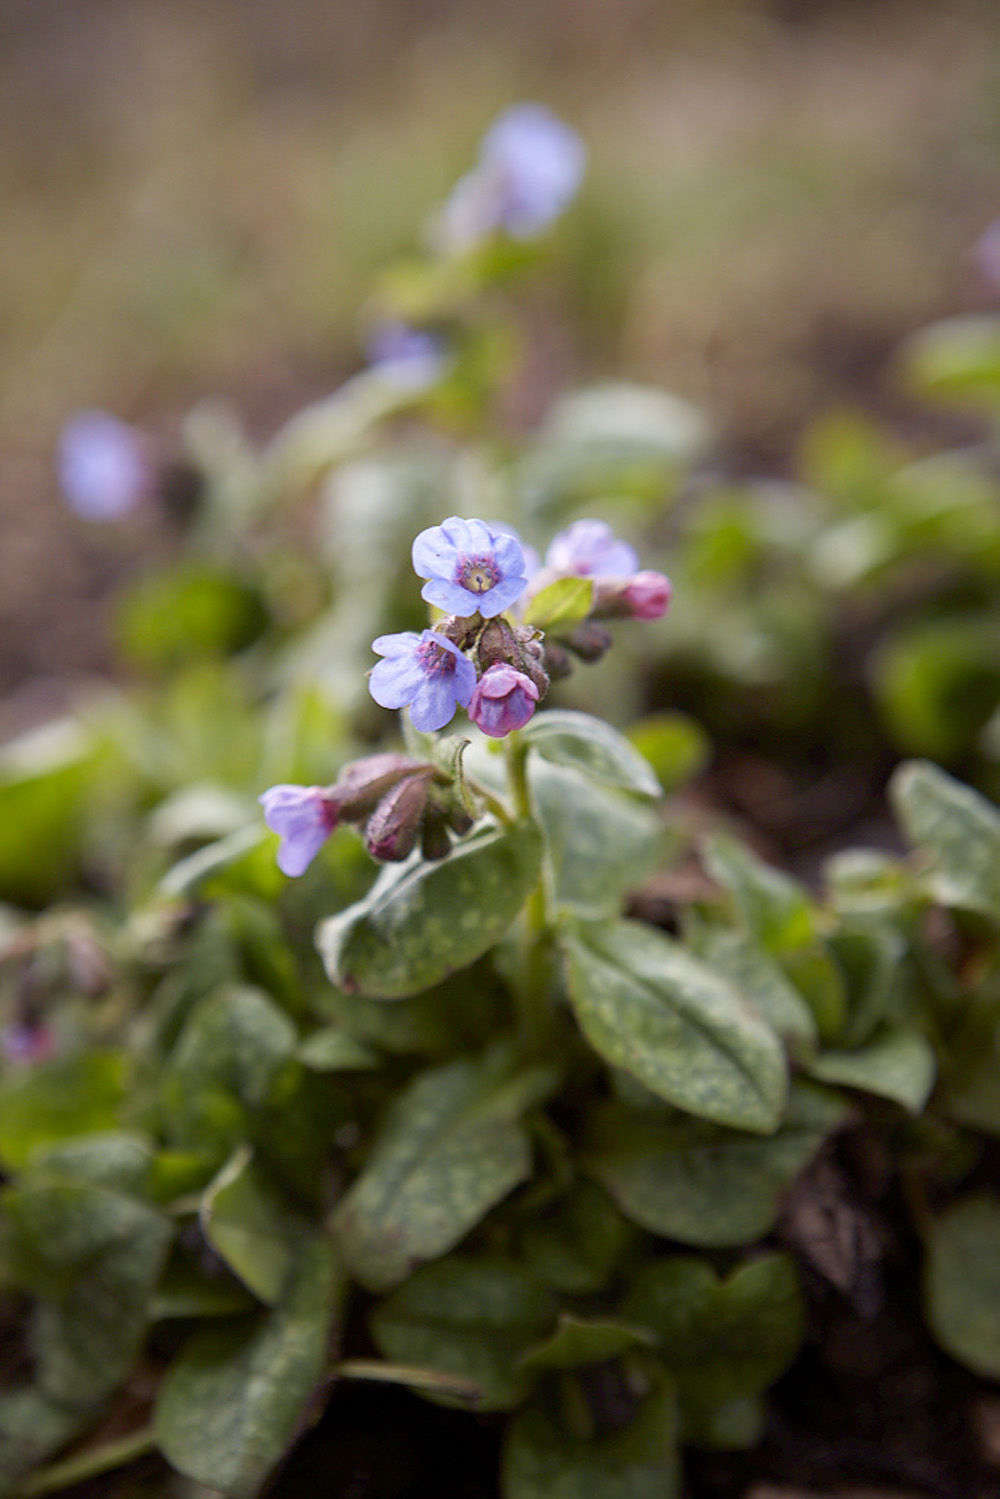 Althoughpulmonaria is considered a useful plant for a shaded or semi-shaded place, blue varieties aregenerally more tolerant of sun. For the best blues, stick toP. longifolia and angustifolia.